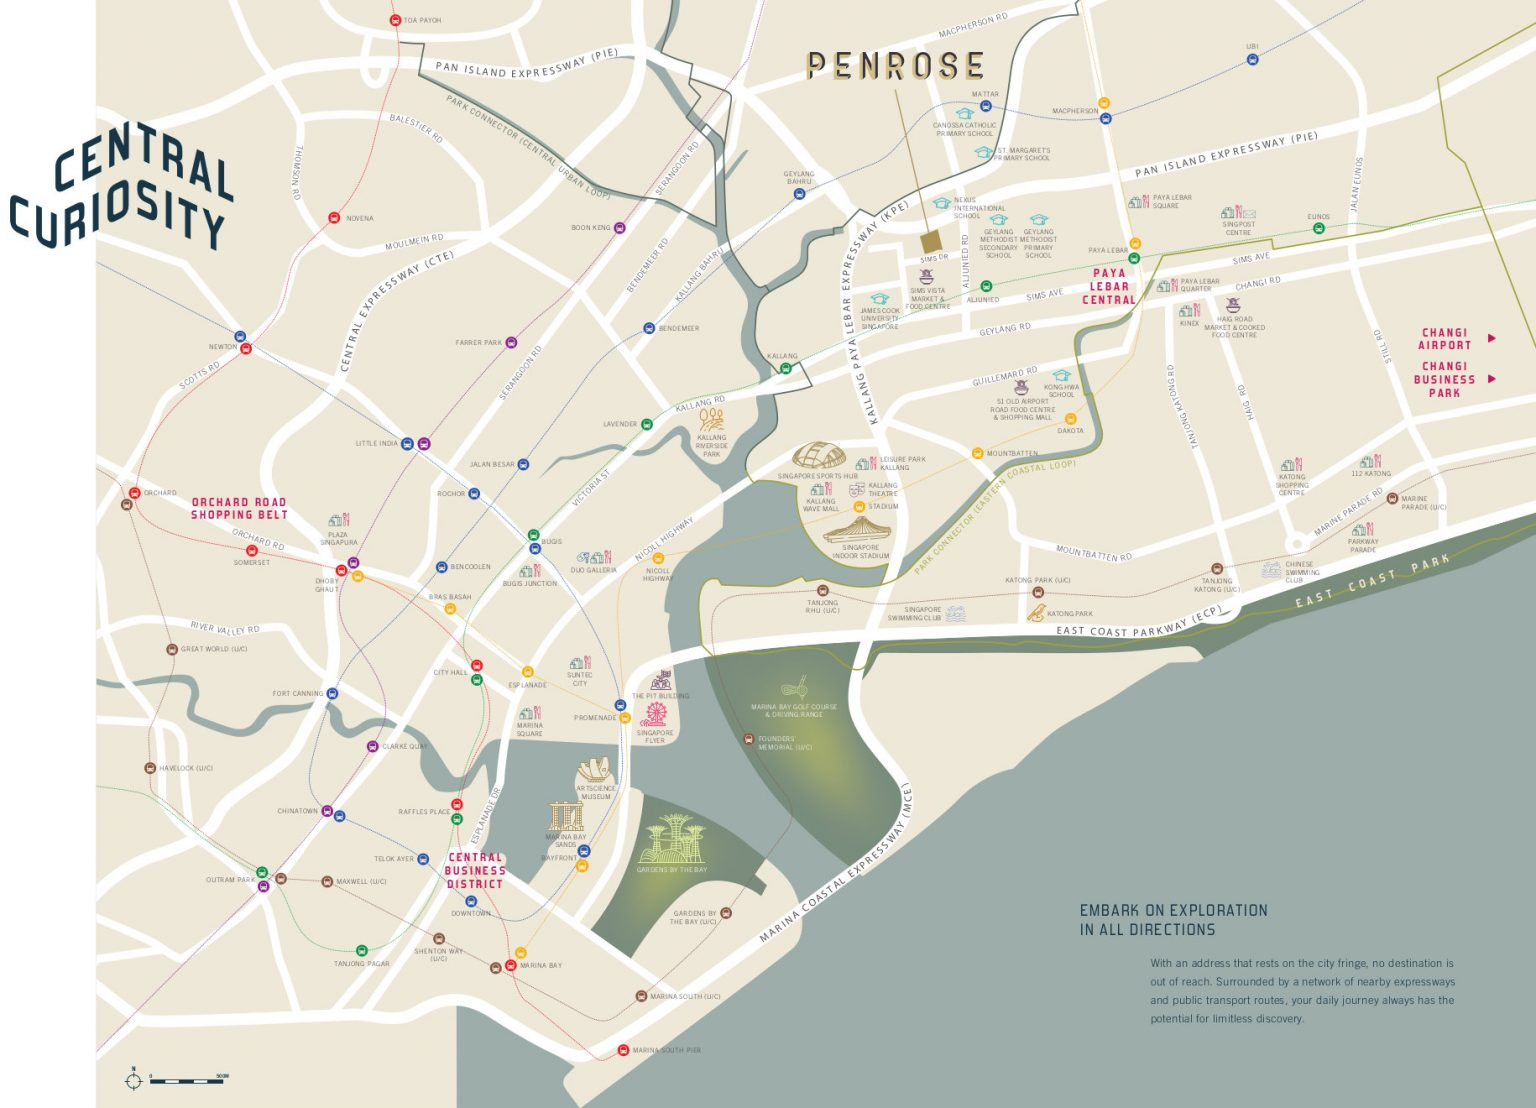 The-Penrose-Location-Map-Amenities-1536x1108